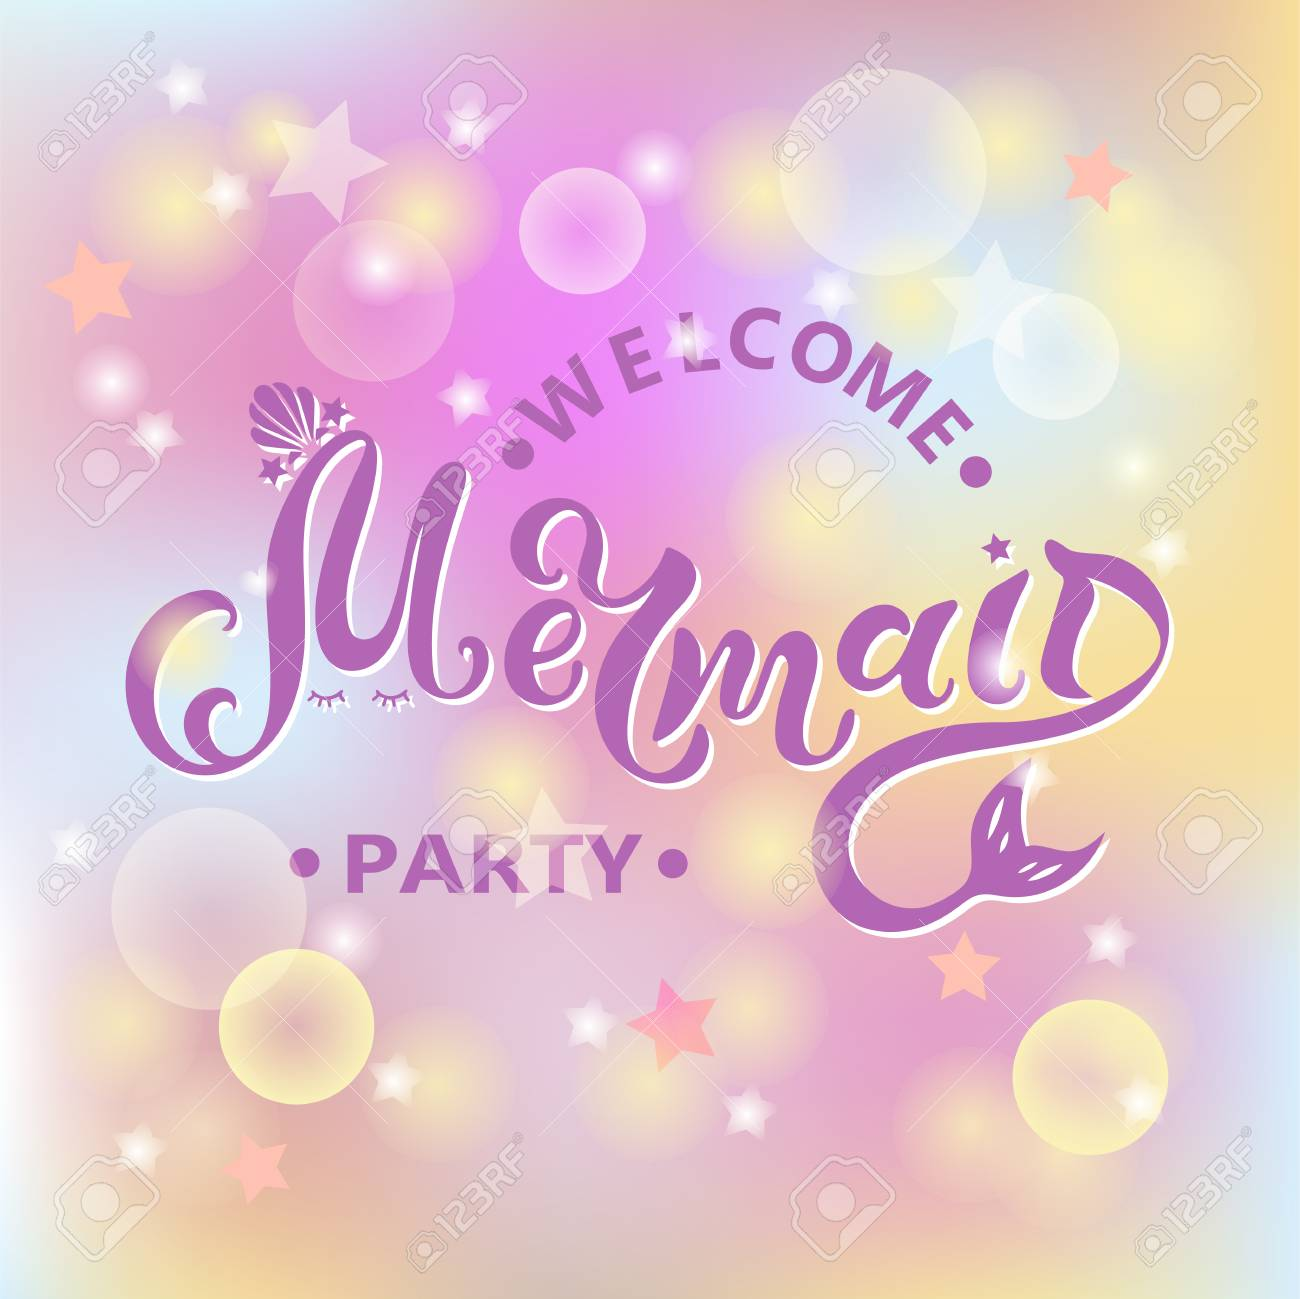 Welcome Mermaid Party Text Isolated On Pastel Colored Background